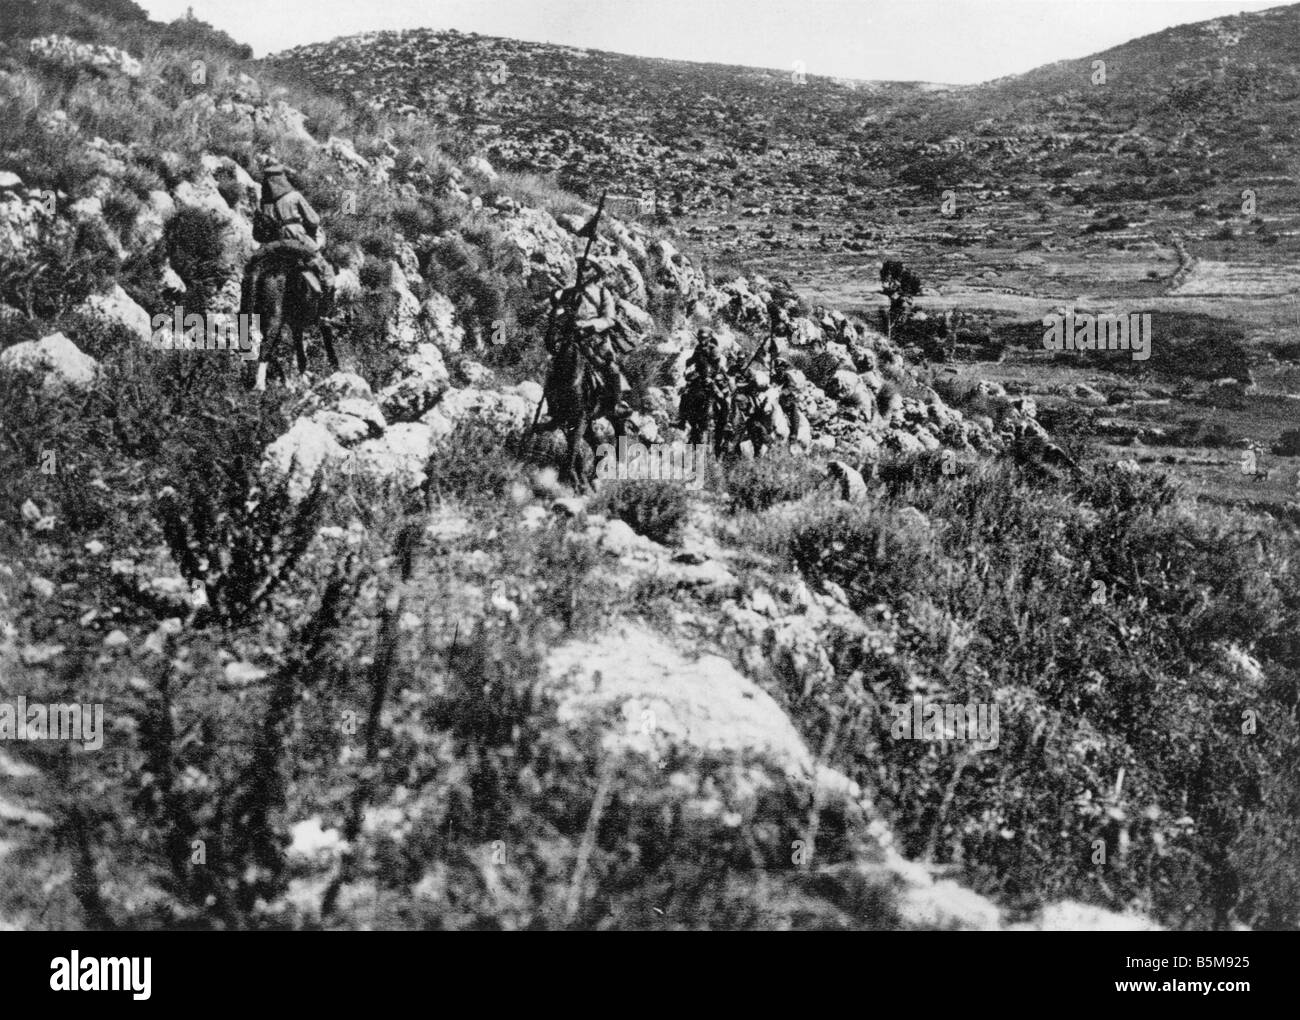 2 G55 N1 1915 German cavalry Palestine WWI c 1915 History World War I Middle East Germany and Turkey fight together - Stock Image